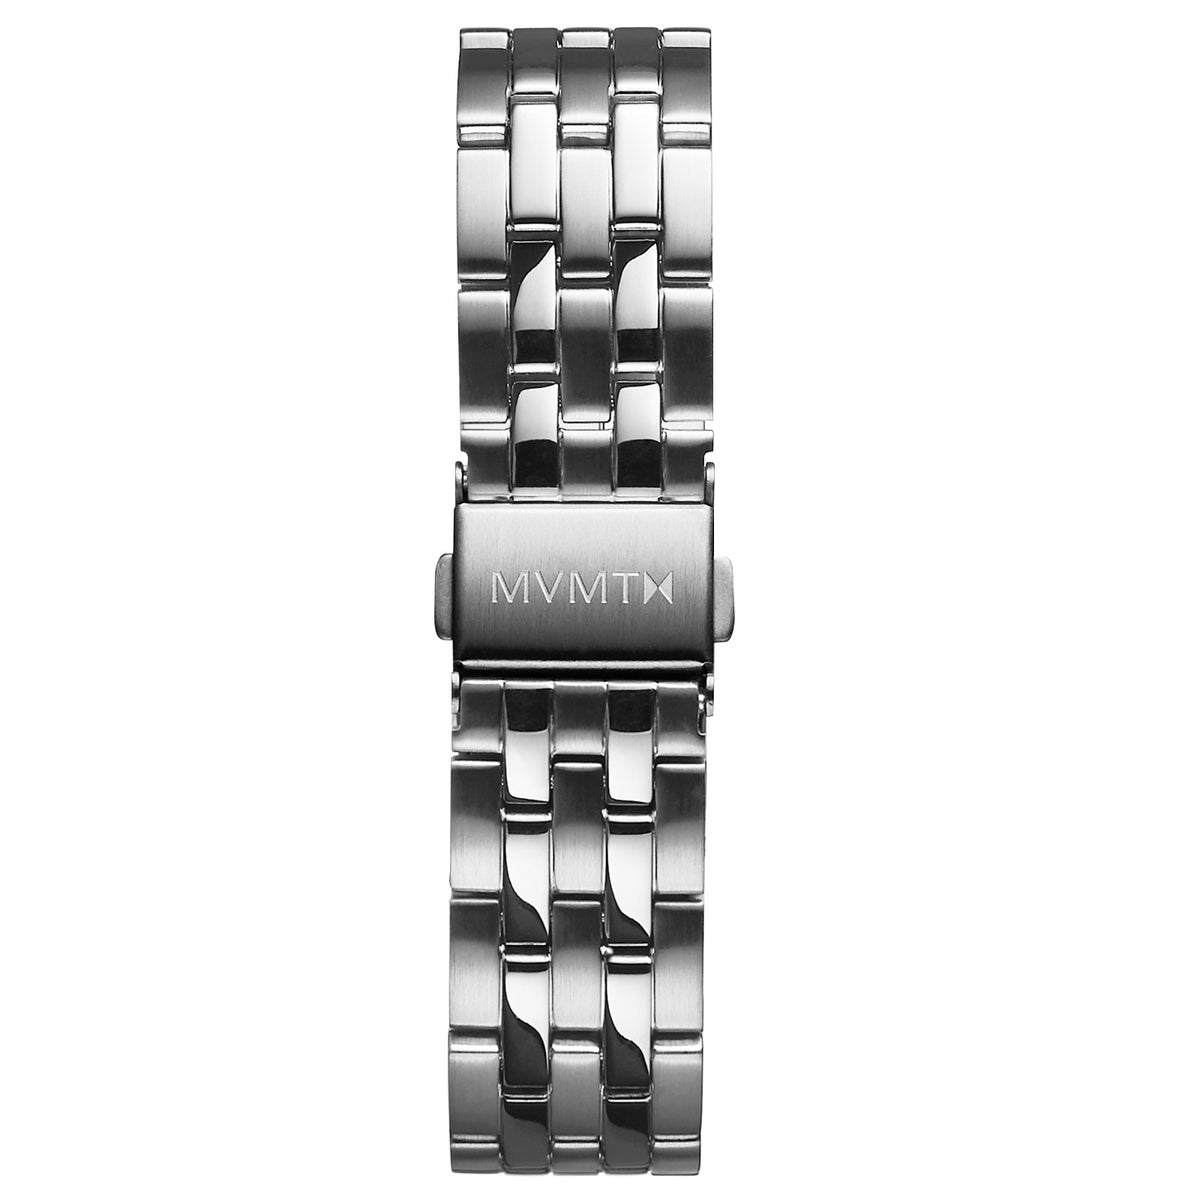 Signature Square - 16mm Steel Band